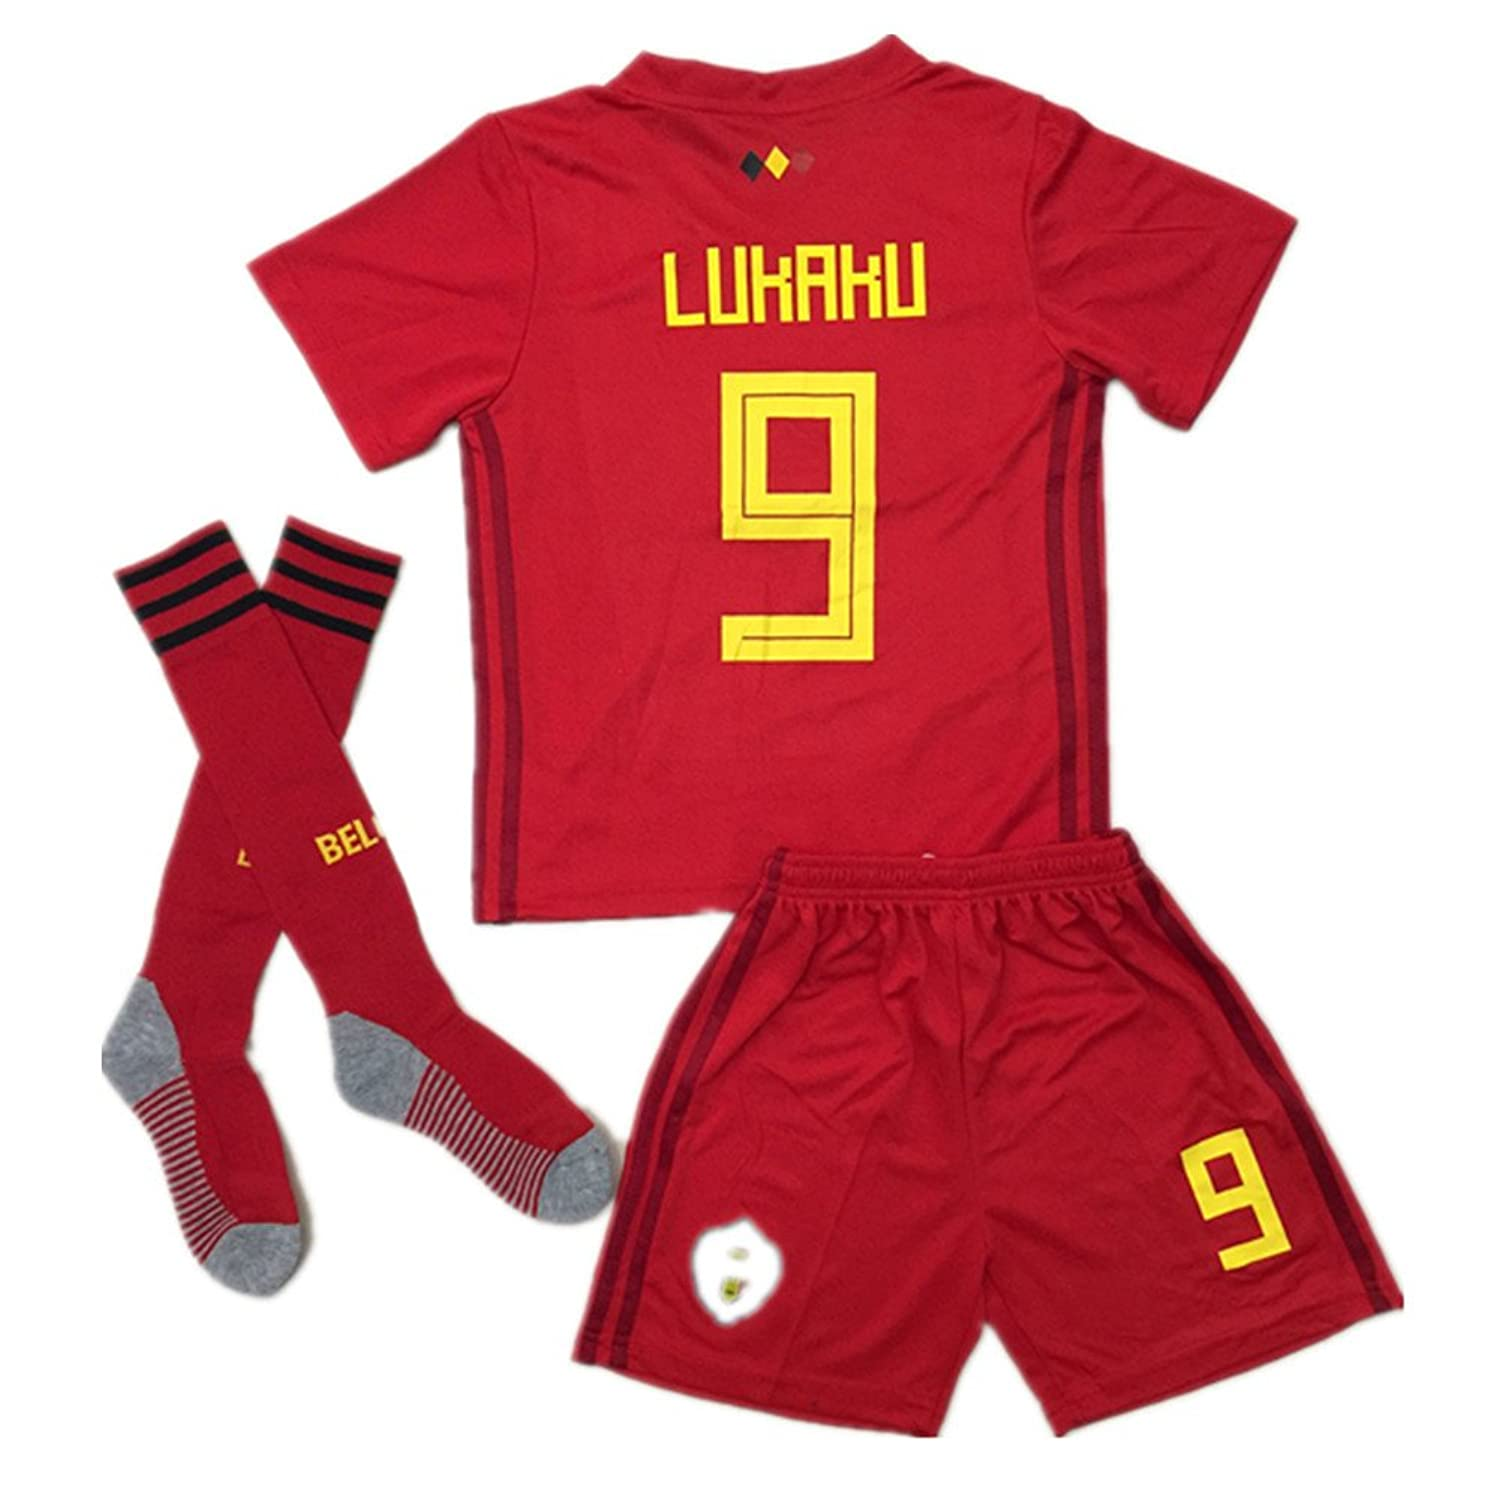 BelgiumJS 9 Lukaku 2018 Russia World Cup Belgium Home Soccer Jersey Youth Kids  Jersey   Shorts   Socks 892234c84